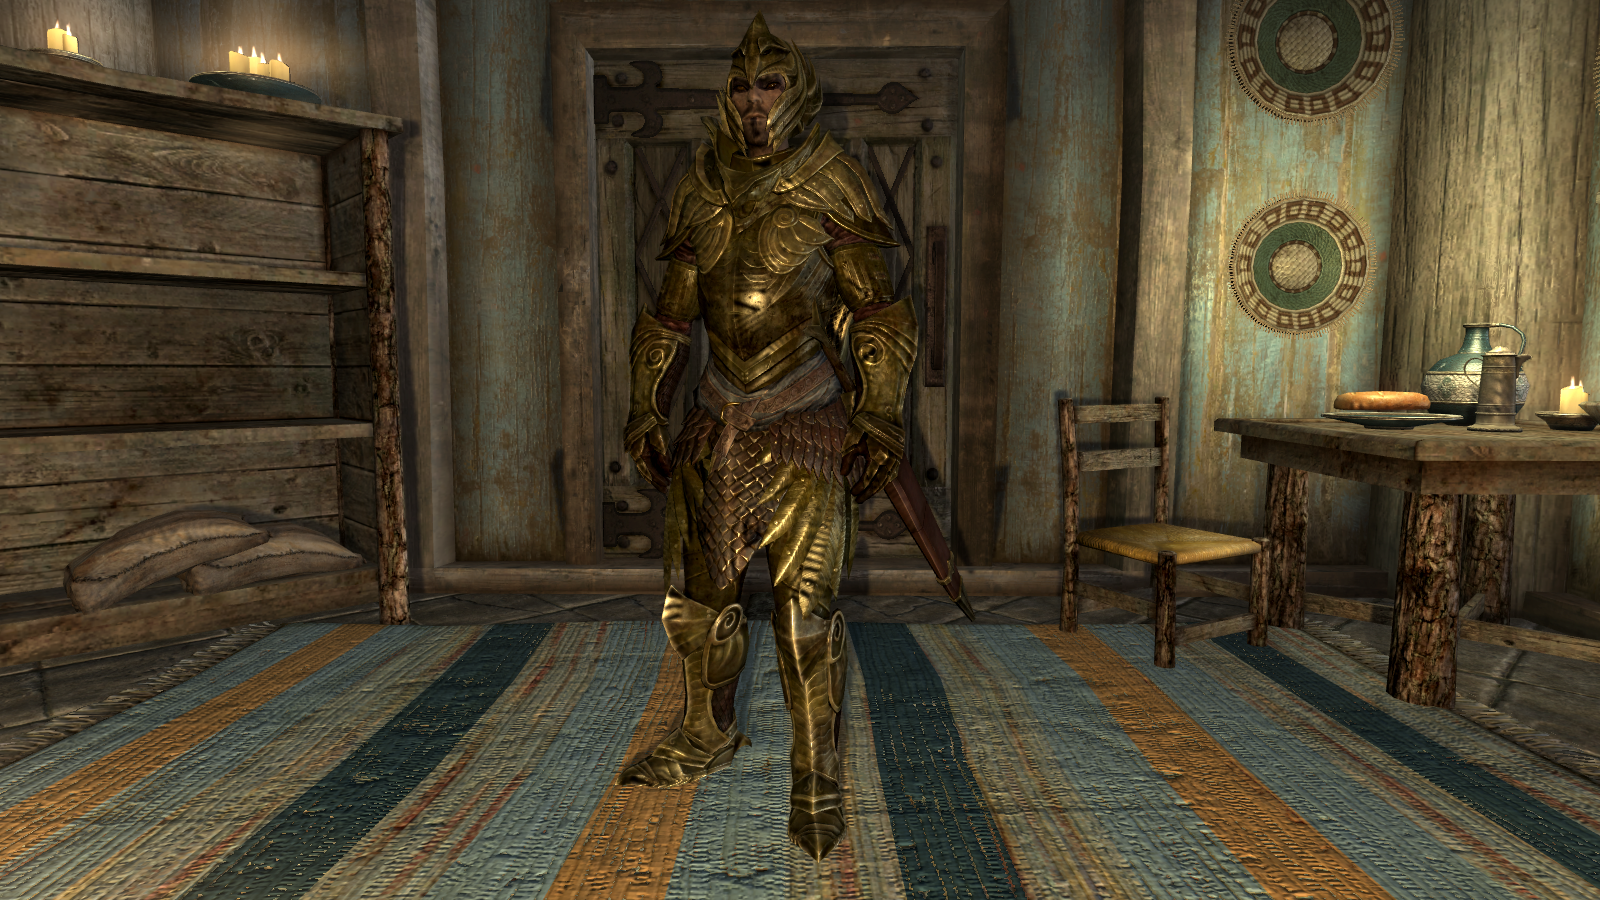 Elven Armor and Weapons recolor at Skyrim Nexus - mods and community